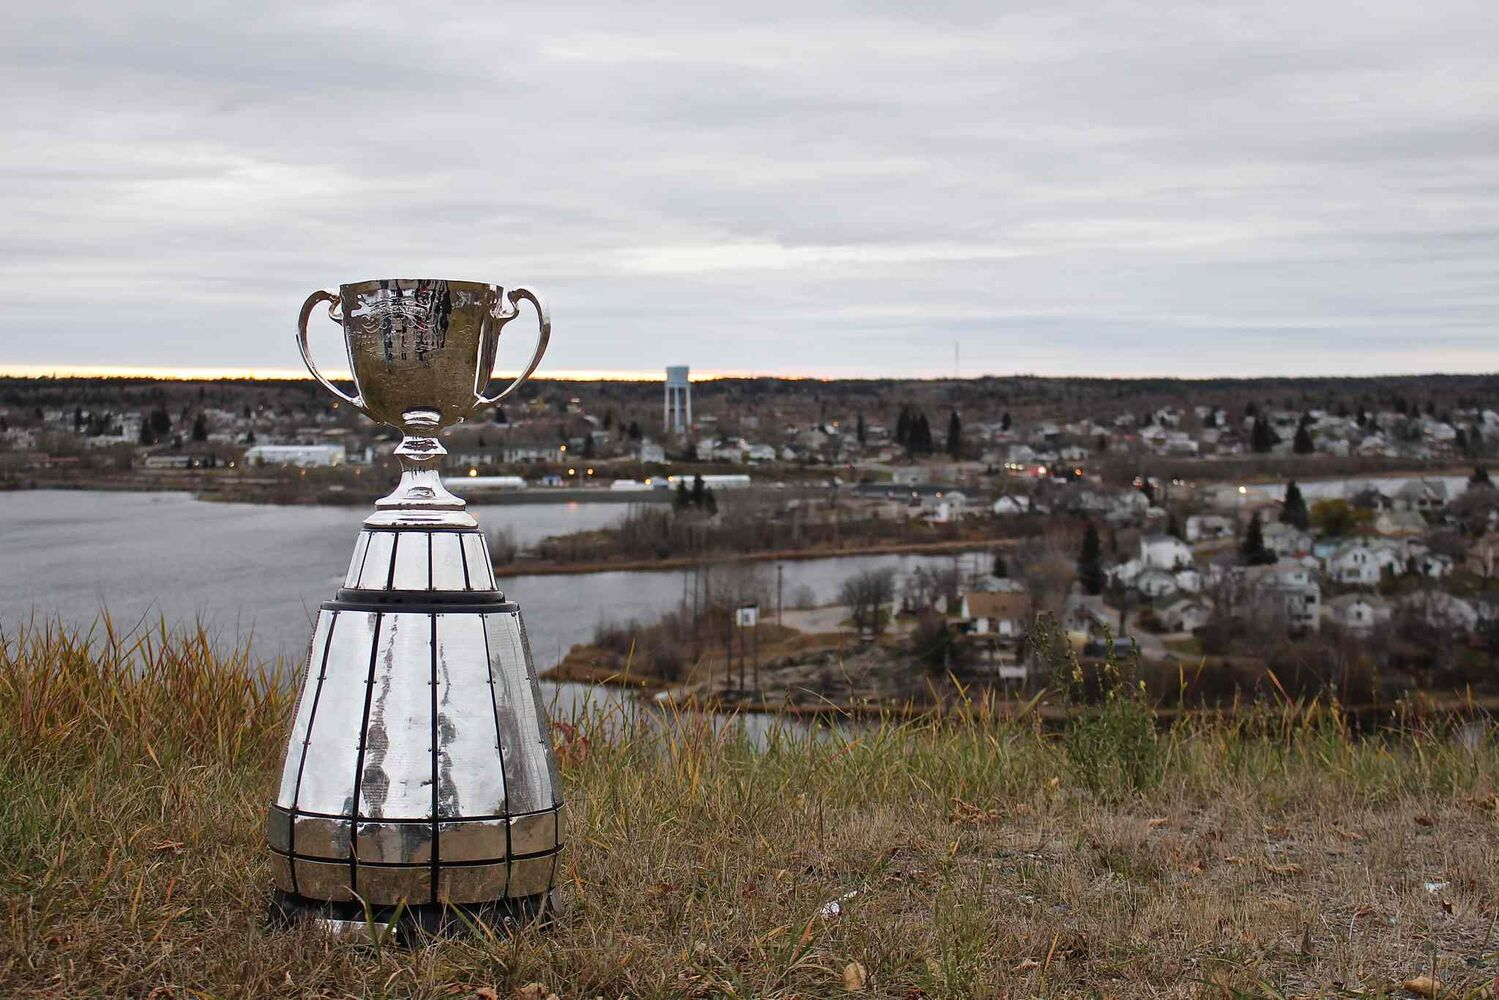 The Grey Cup overlooking the town of Flin Flon. The trophy was in town as part of an eight-day tour through northern Manitoba to help promote the Grey Cup game in Winnipeg this year. (Jeff Hamilton / Winnipeg Free Press)